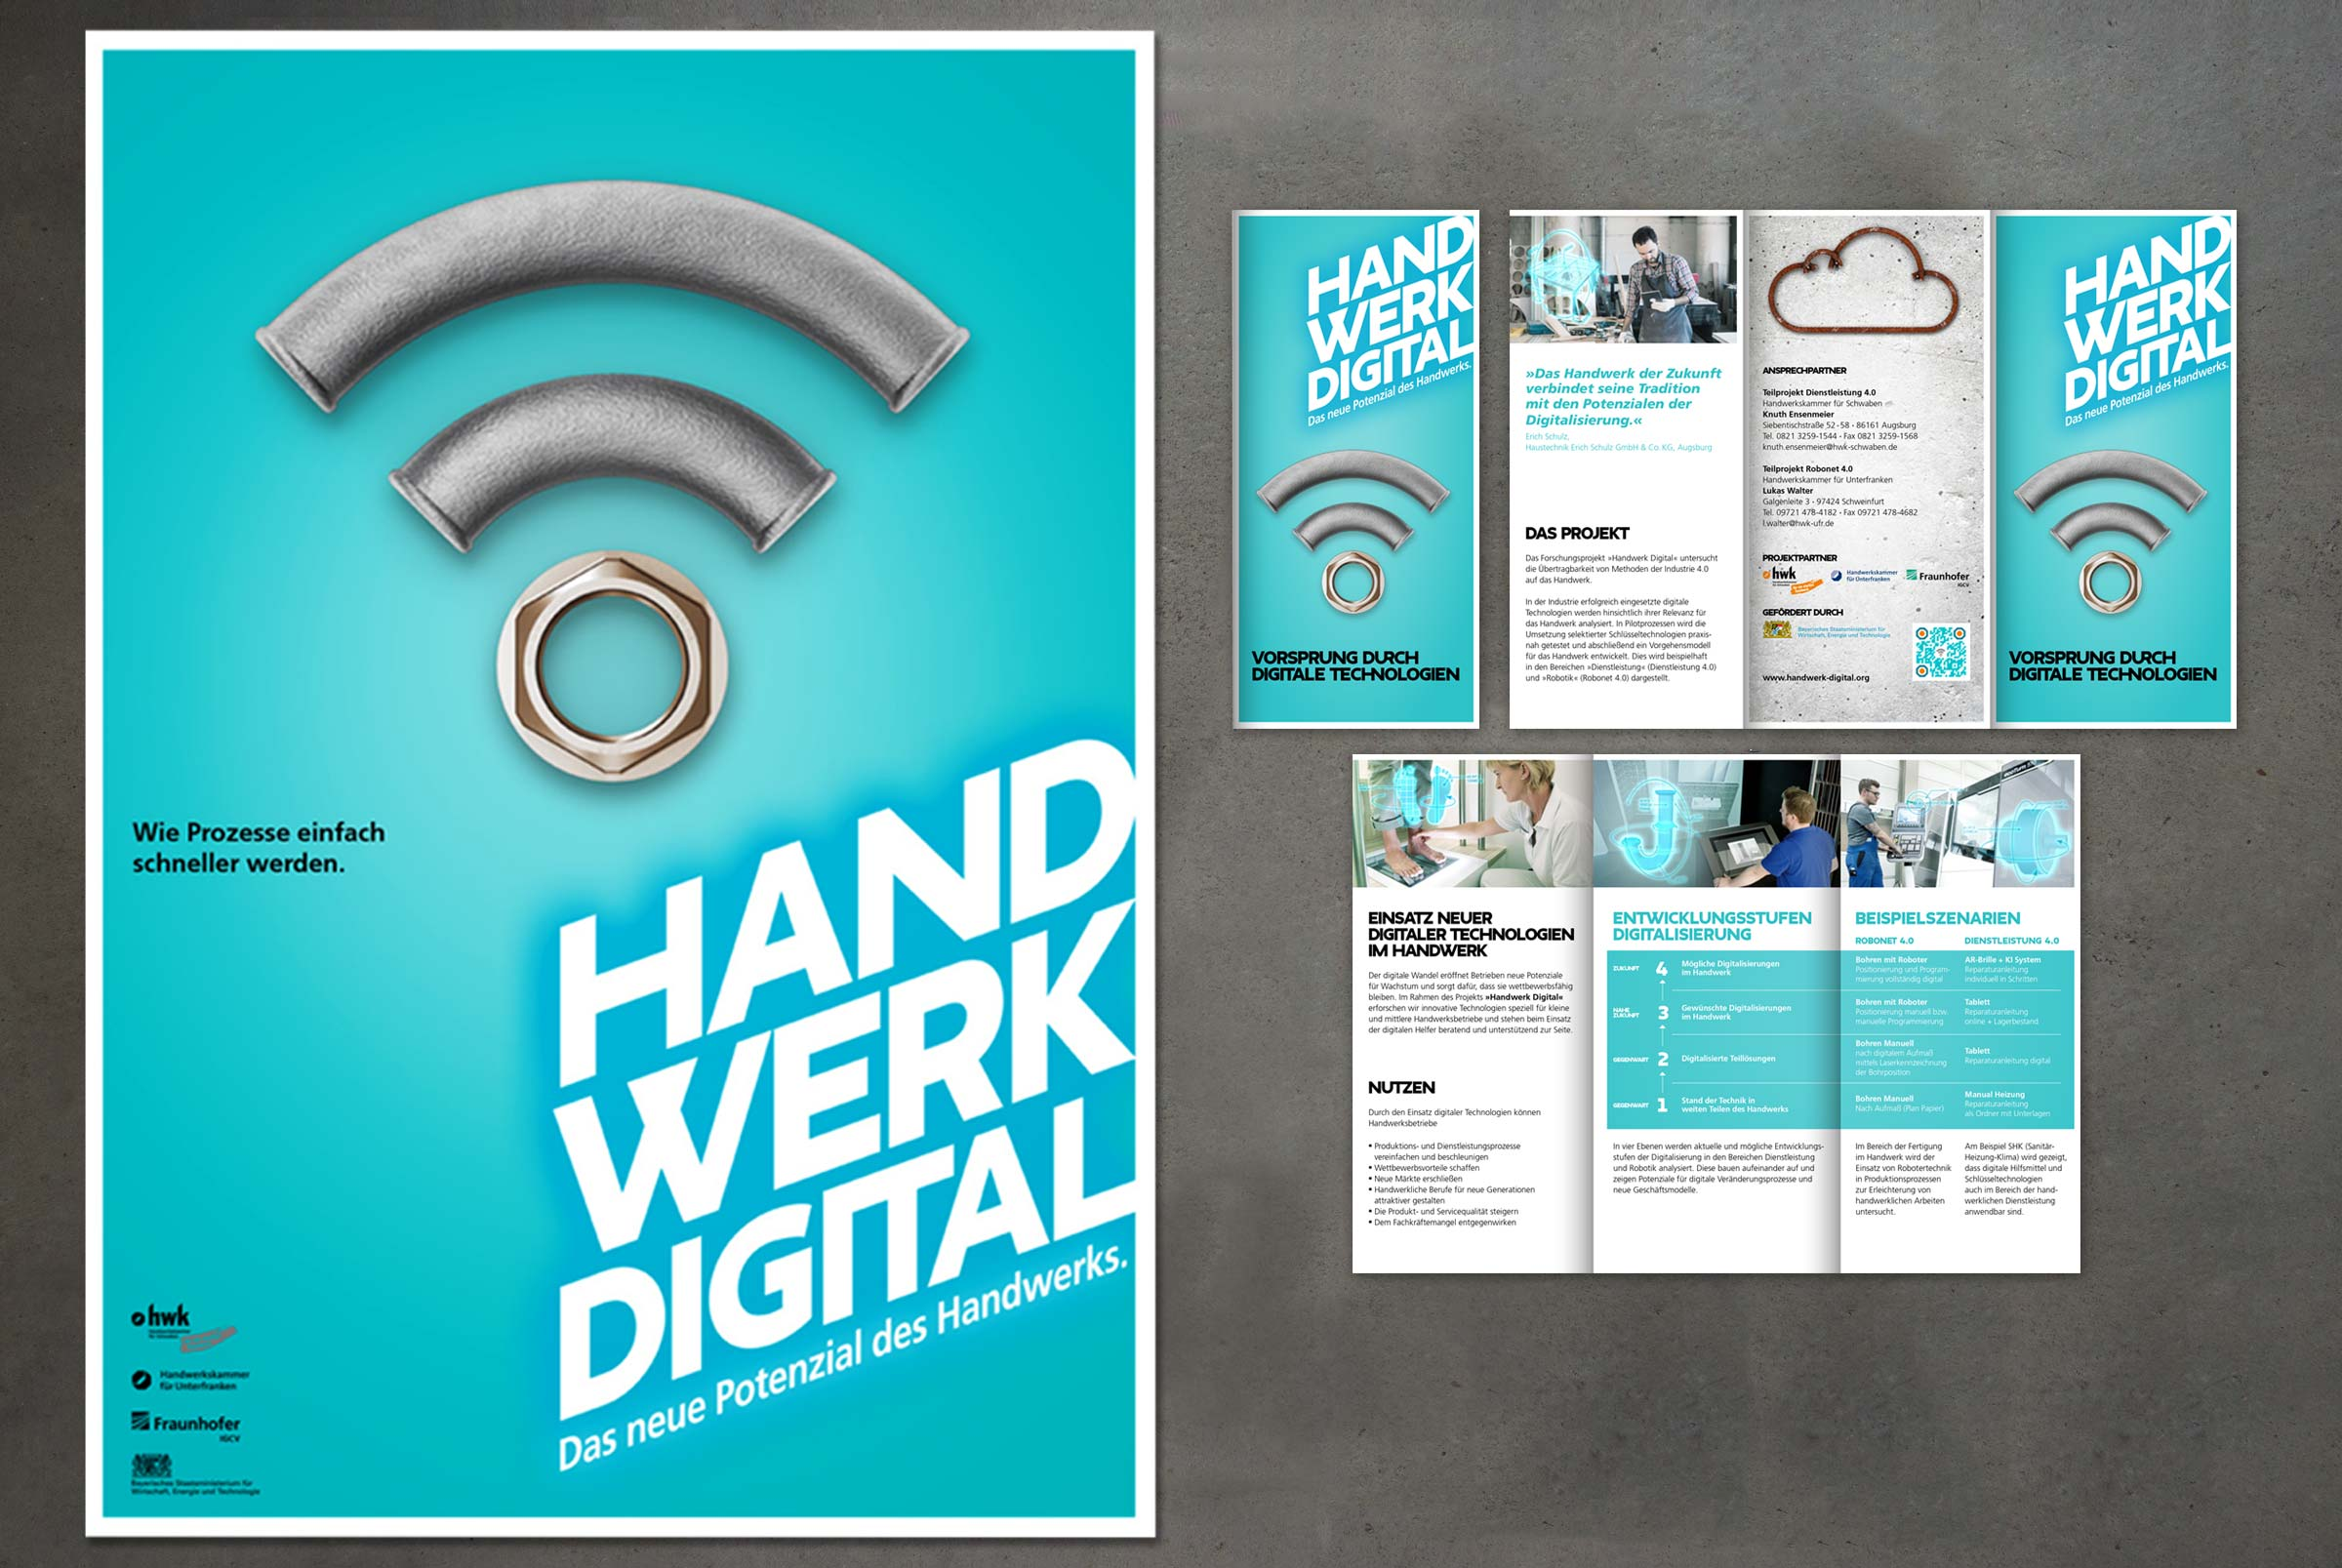 Handwerk Digital